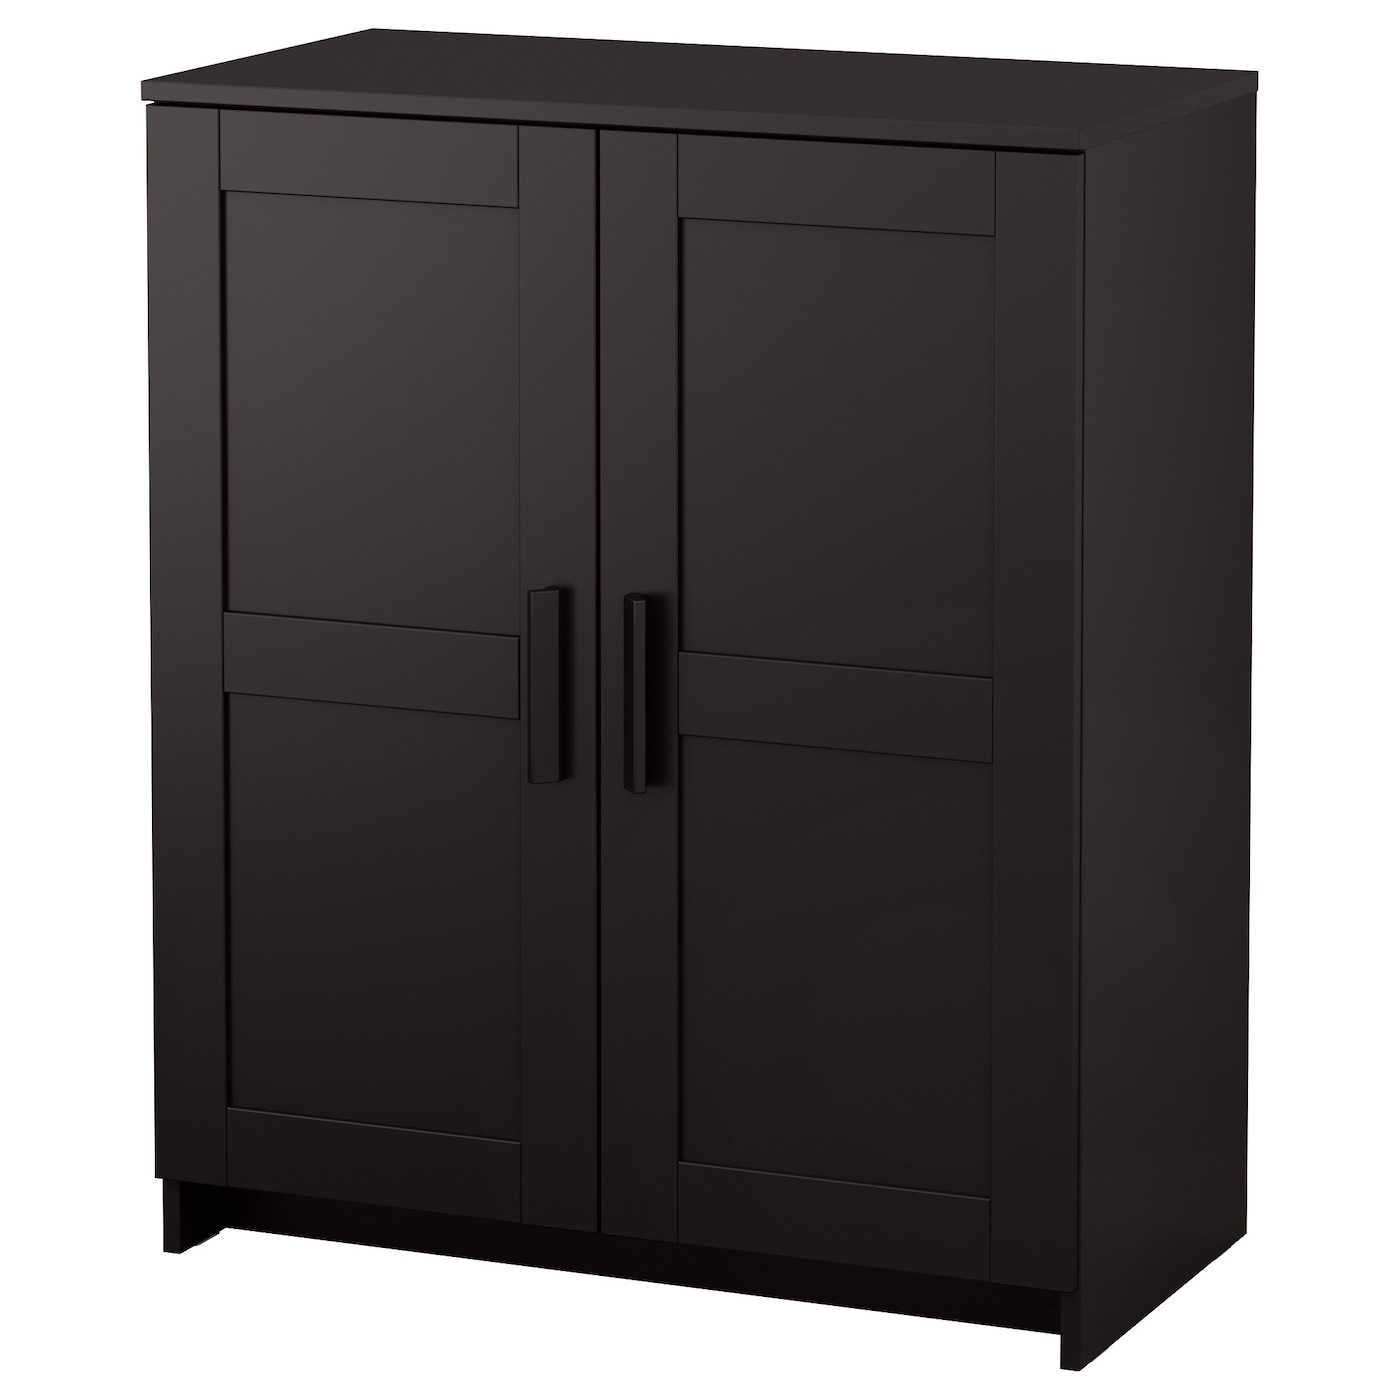 Brimnes cabinet with doors black 78x95 cm ikea for Kommode 140 x 100